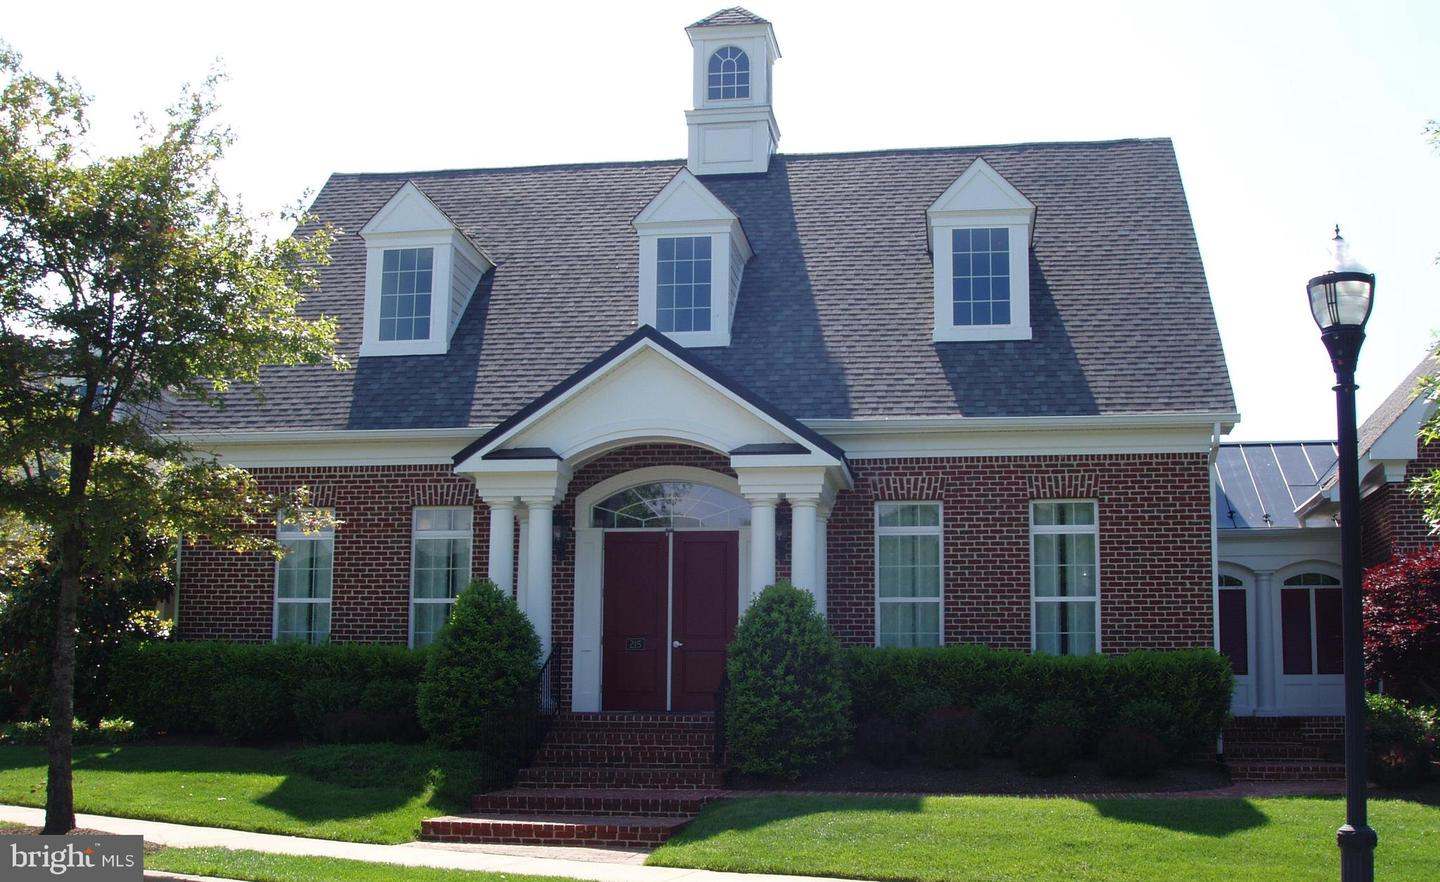 Additional photo for property listing at 53 Steeplechase Dr La Plata, Maryland 20646 United States